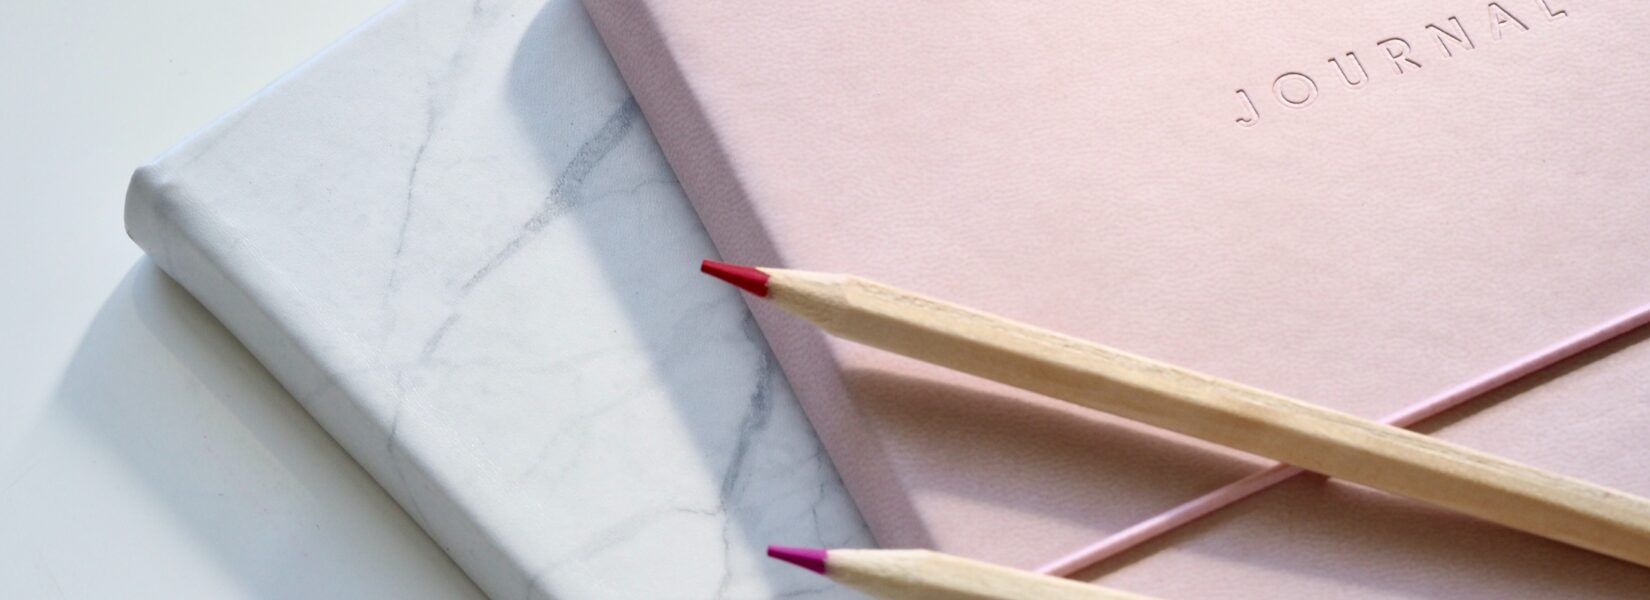 So, You Want To Start Journaling Your Life? Here's How.